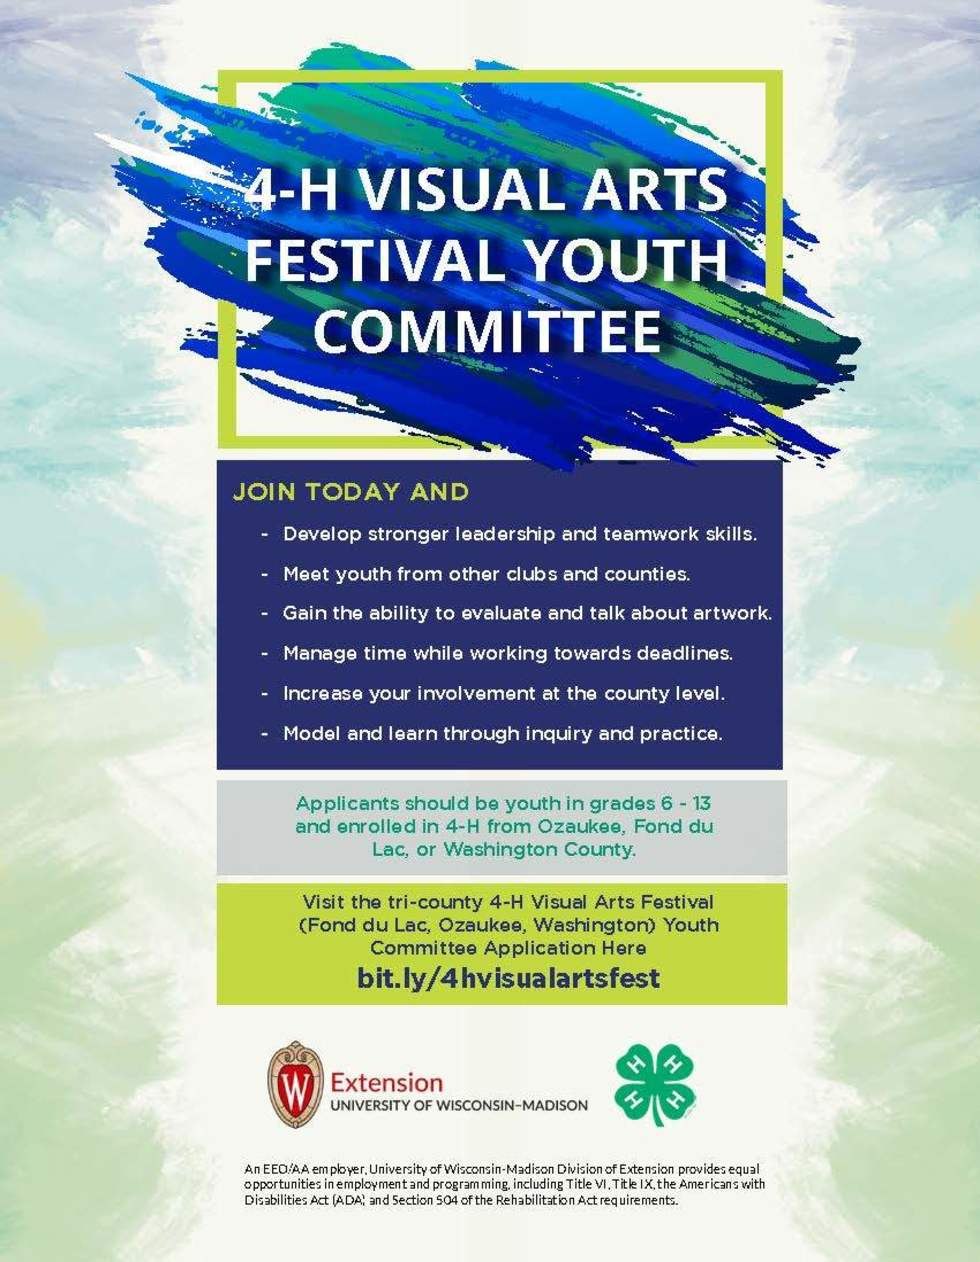 4-H VISUAL ARTS FESTIVAL YOUTH COMMITTEE